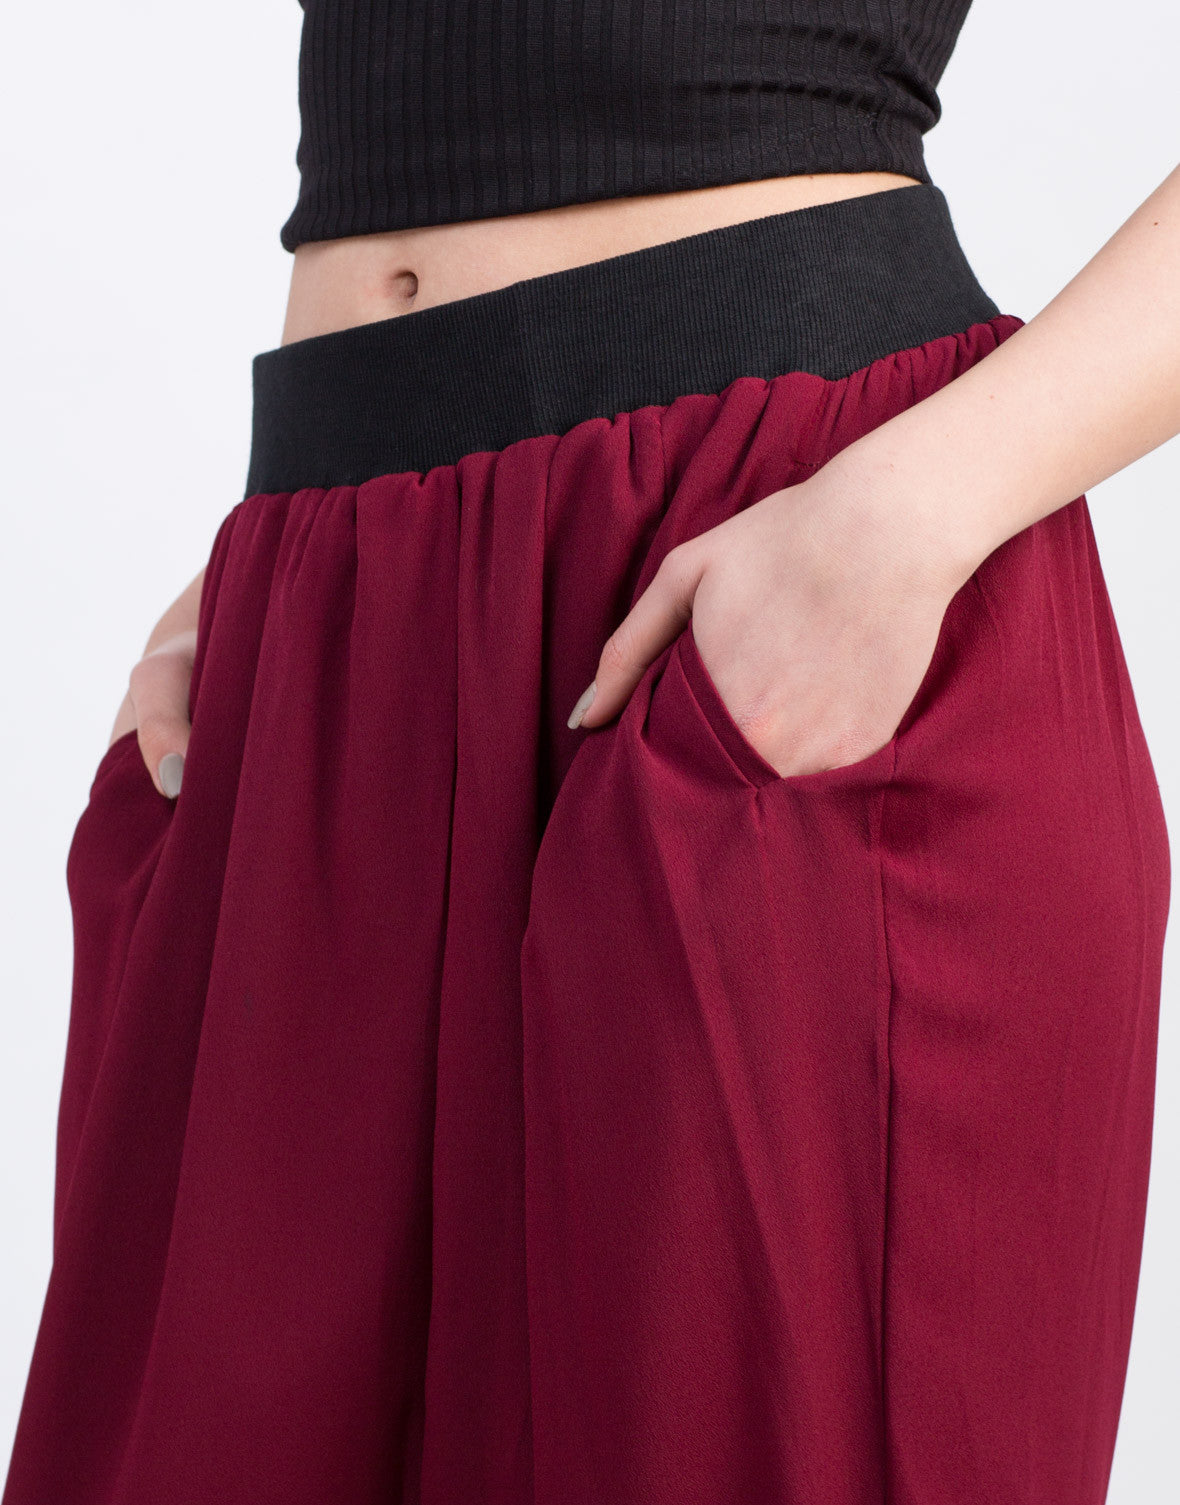 Detail of Chiffon Elastic Waistband Harem Pants